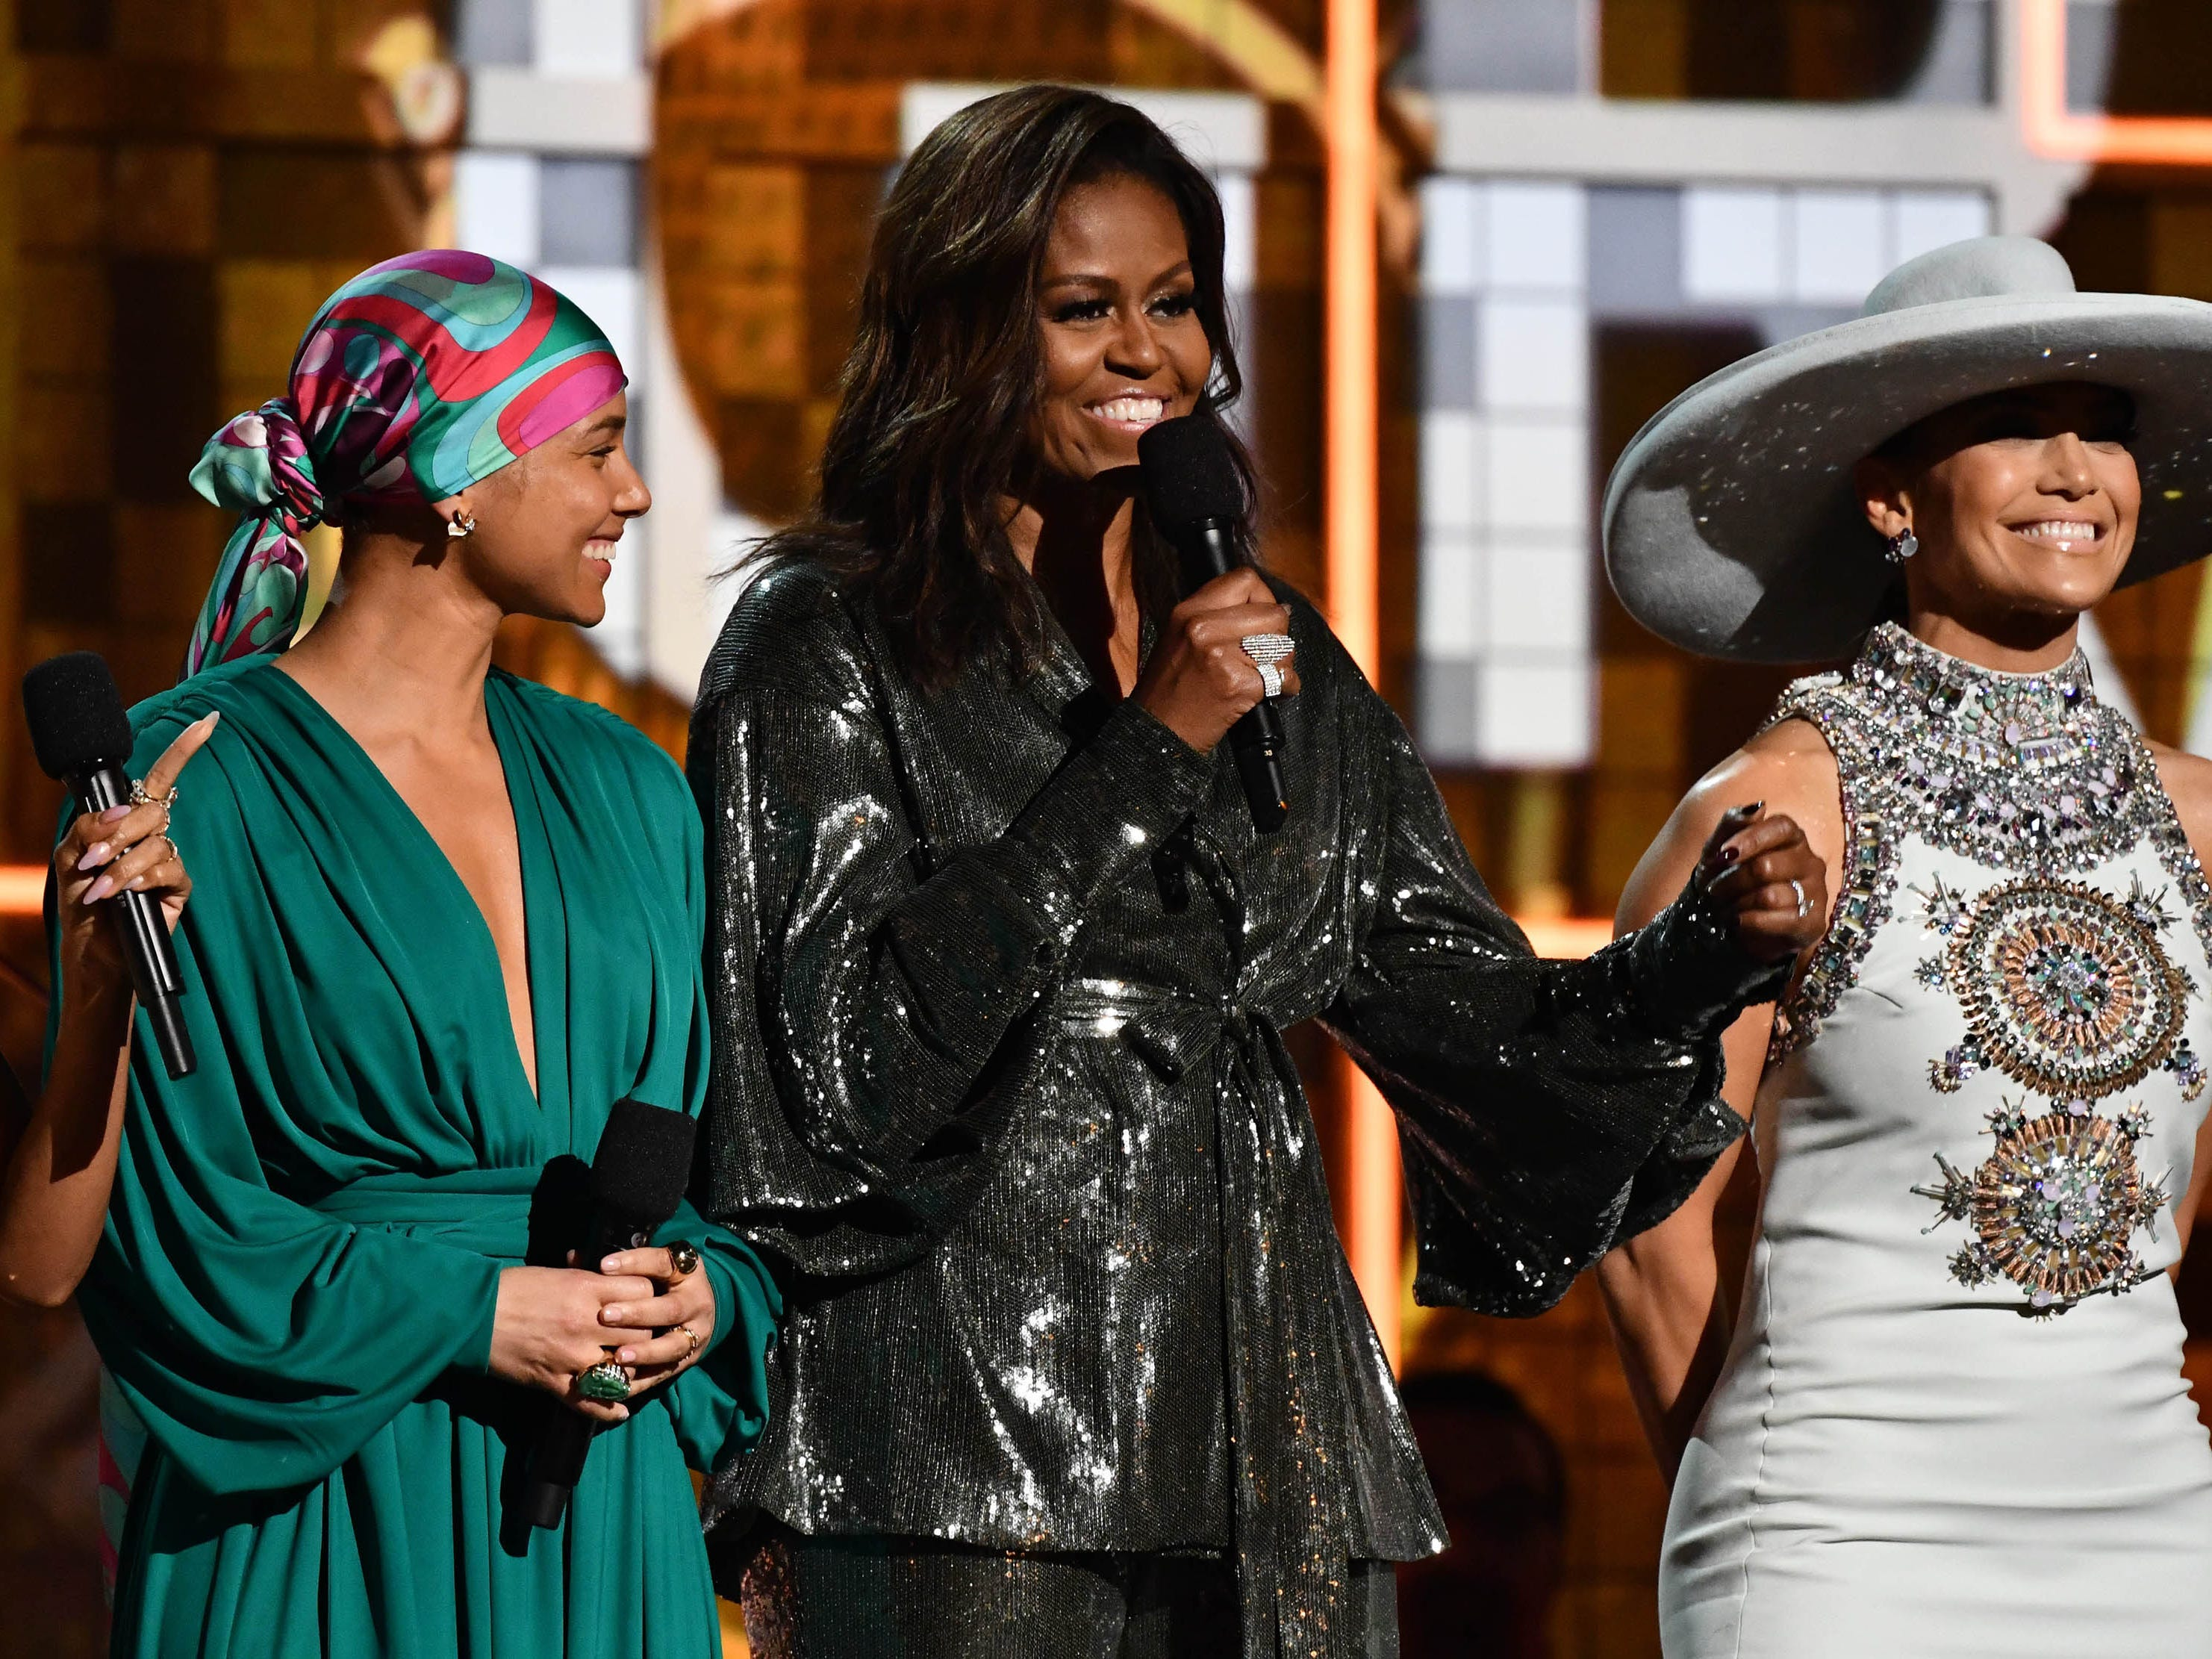 Jada Pinkett-Smith, Alicia Keys and Michelle Obama and Jennifer Lopez appear during the 61st Annual GRAMMY Awards on Feb. 10, 2019 at STAPLES Center in Los Angeles, Calif.